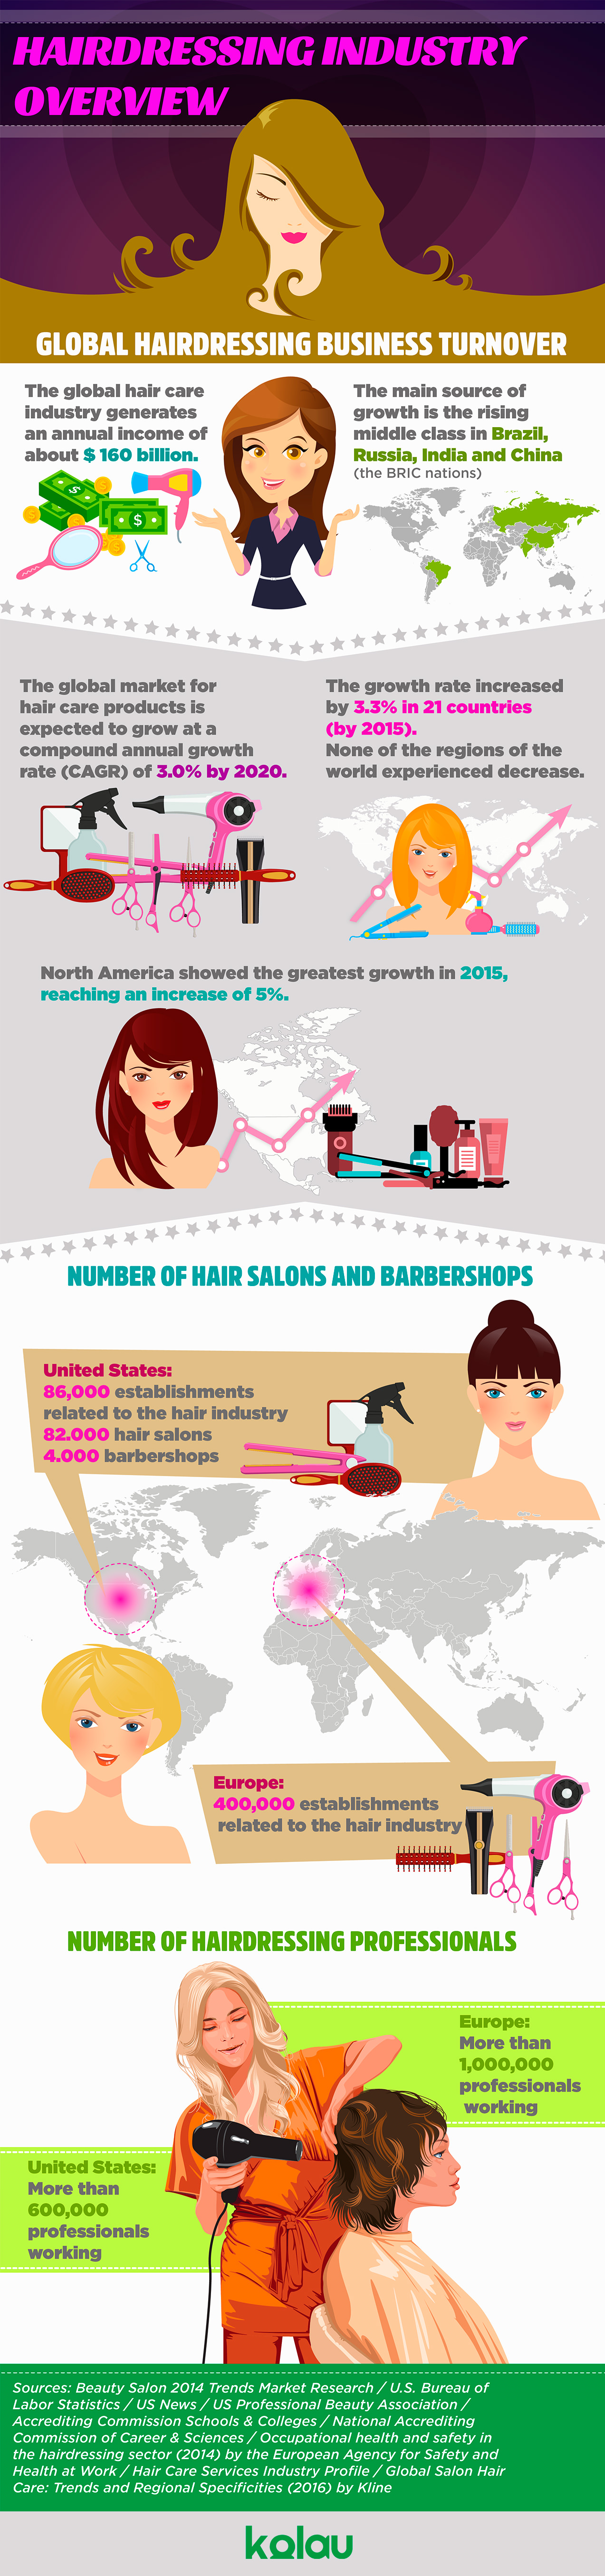 Marketing ideas for hair salons. Hairdressing industry infographic.